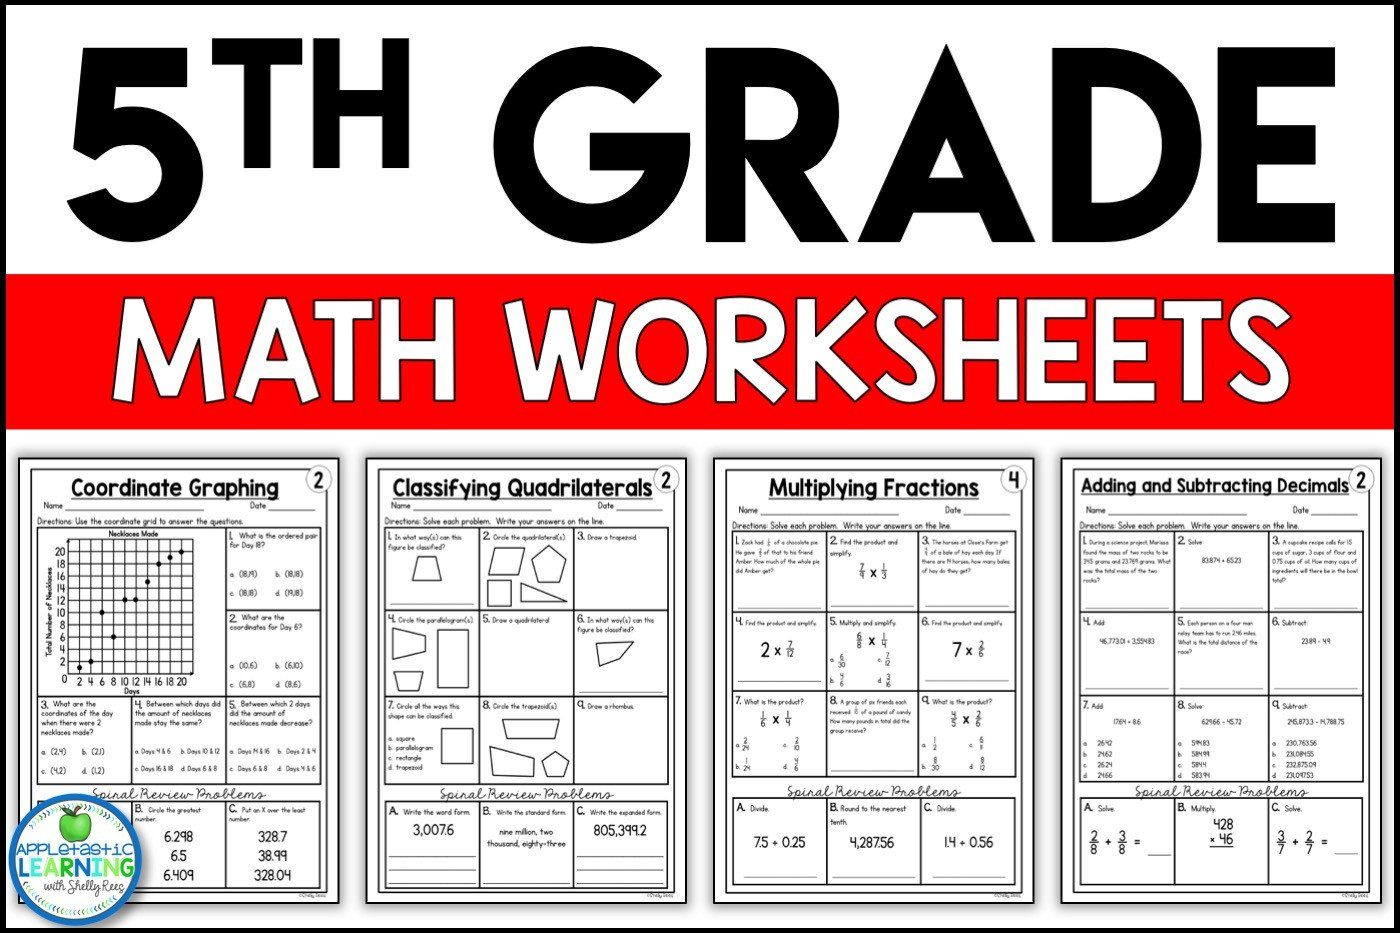 Metric Conversion Worksheets 5th Grade 5th Grade Math Worksheets Free and Printable Appletastic